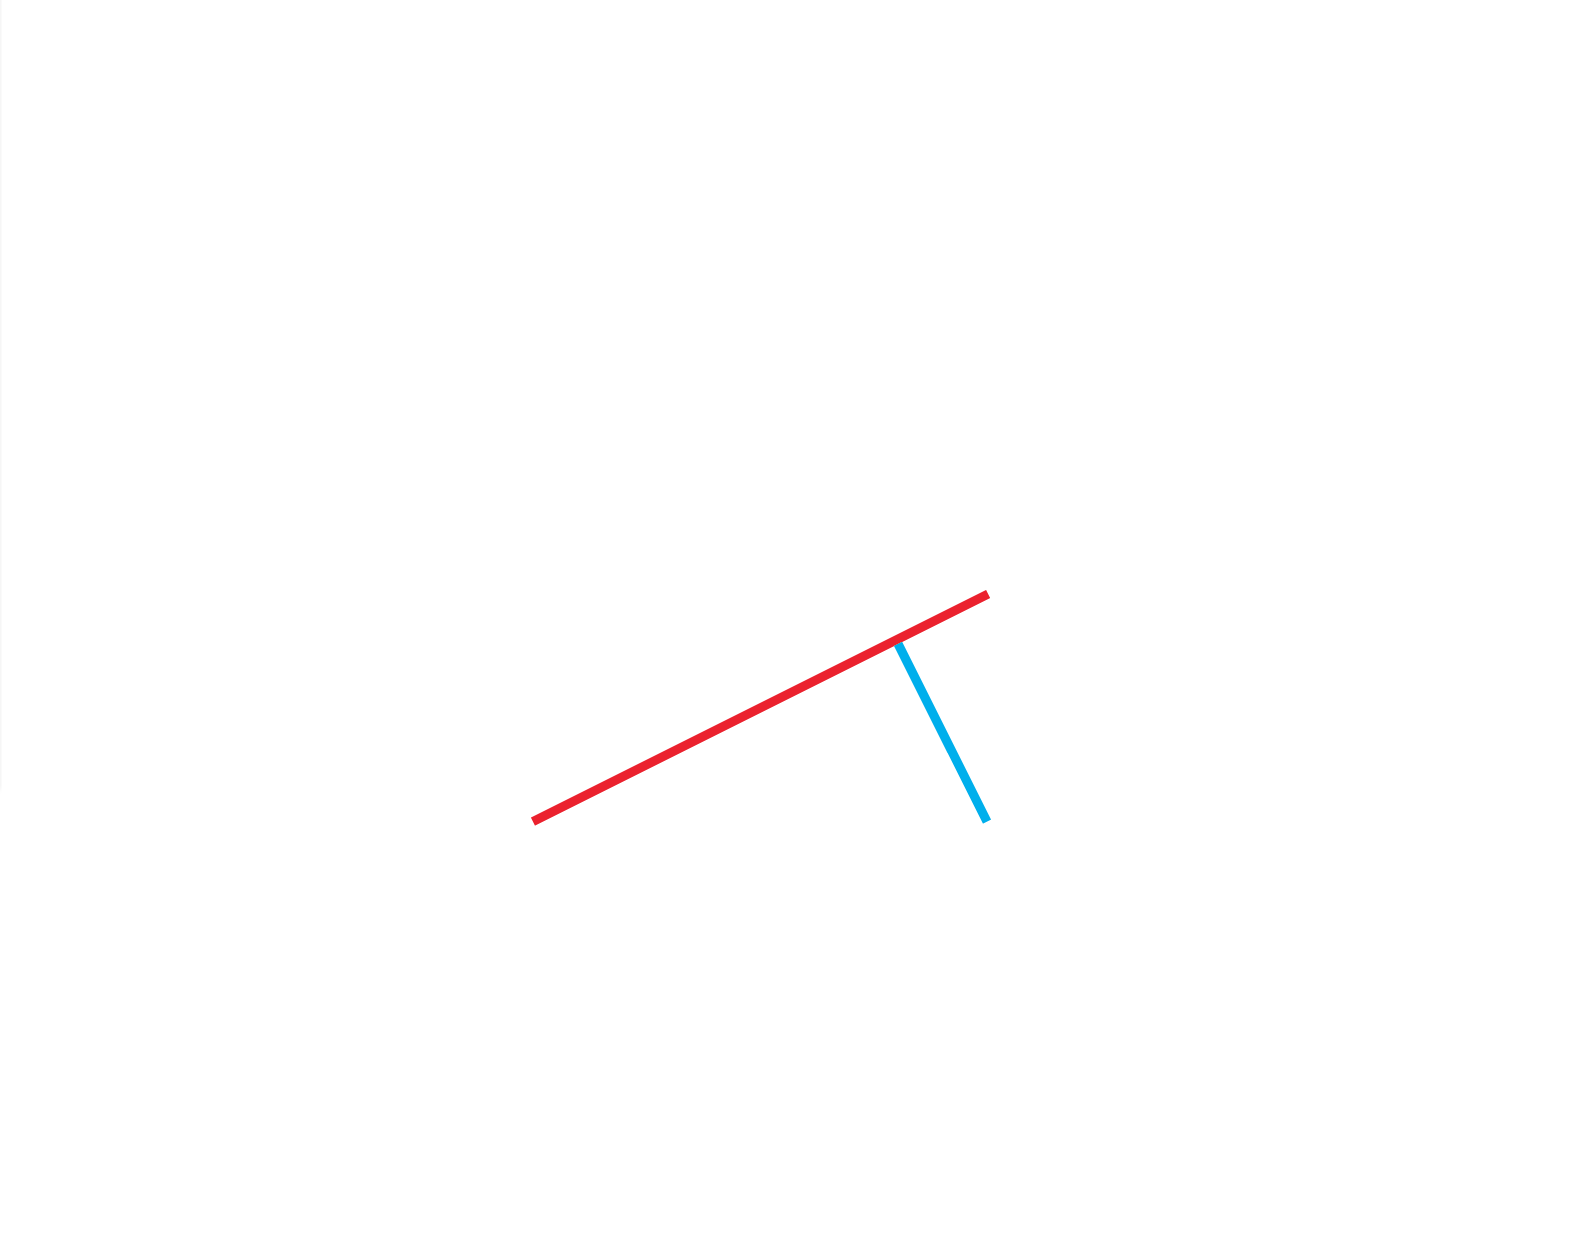 29 the invisible part of the composition tells the story of how the two red points will only be able to clearly communicate with the green line if this circle is located precisely where it can clearly connect these two red points to the green line